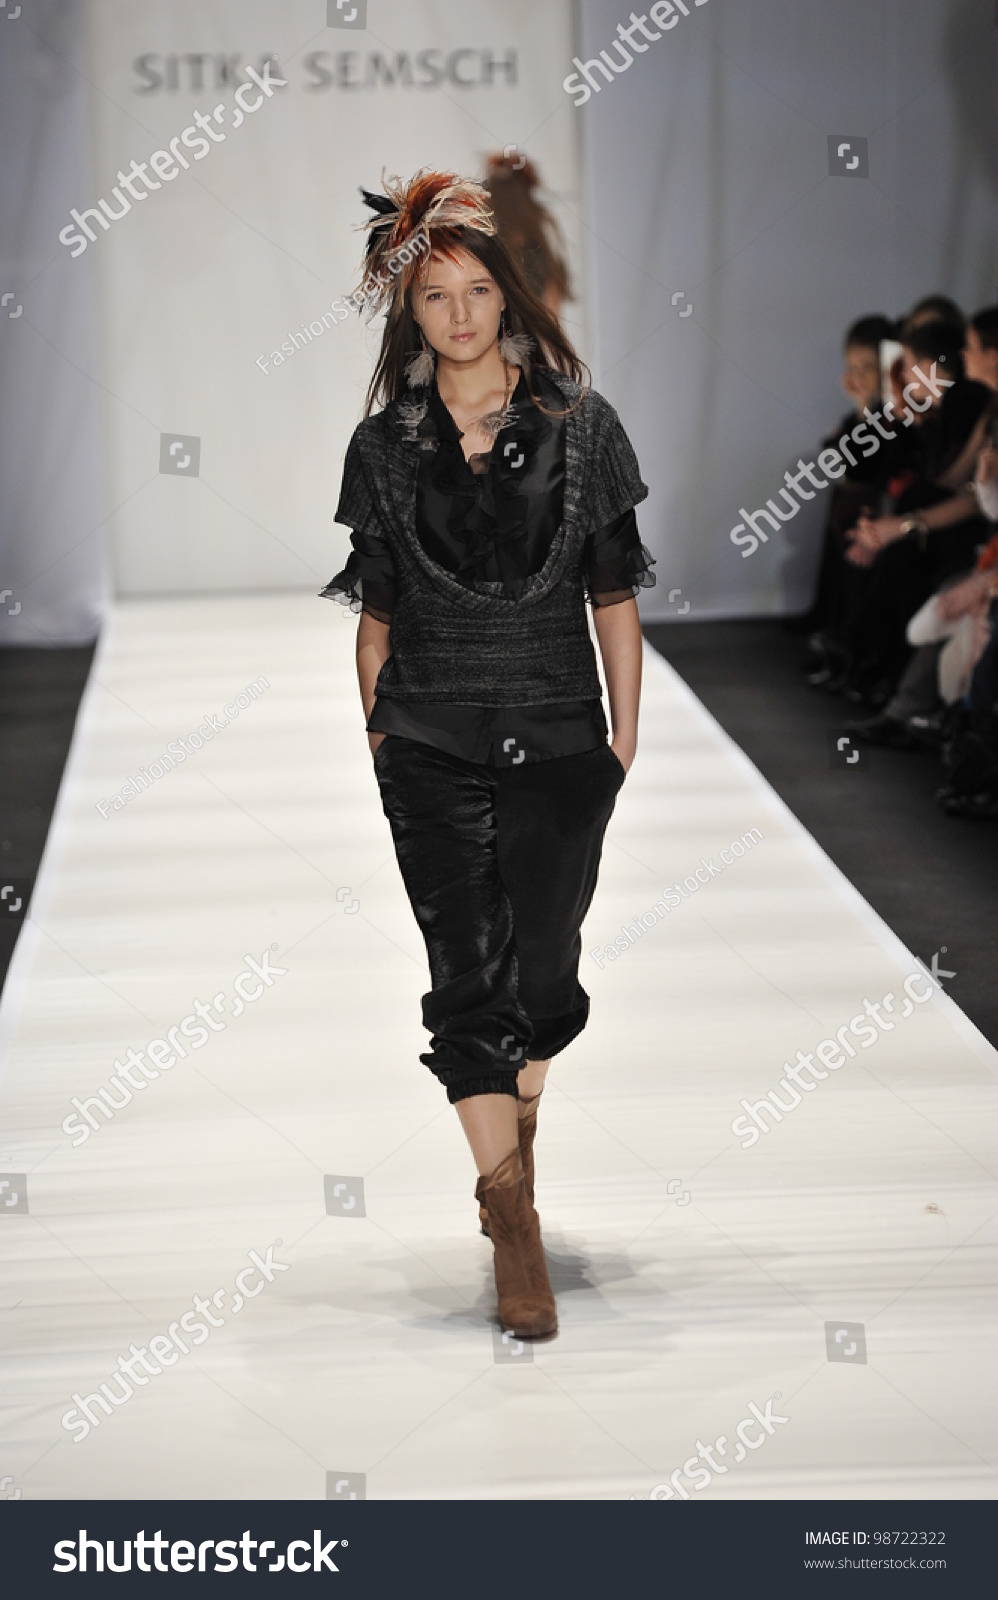 moscow march 24 model walks runway stock photo 98722322